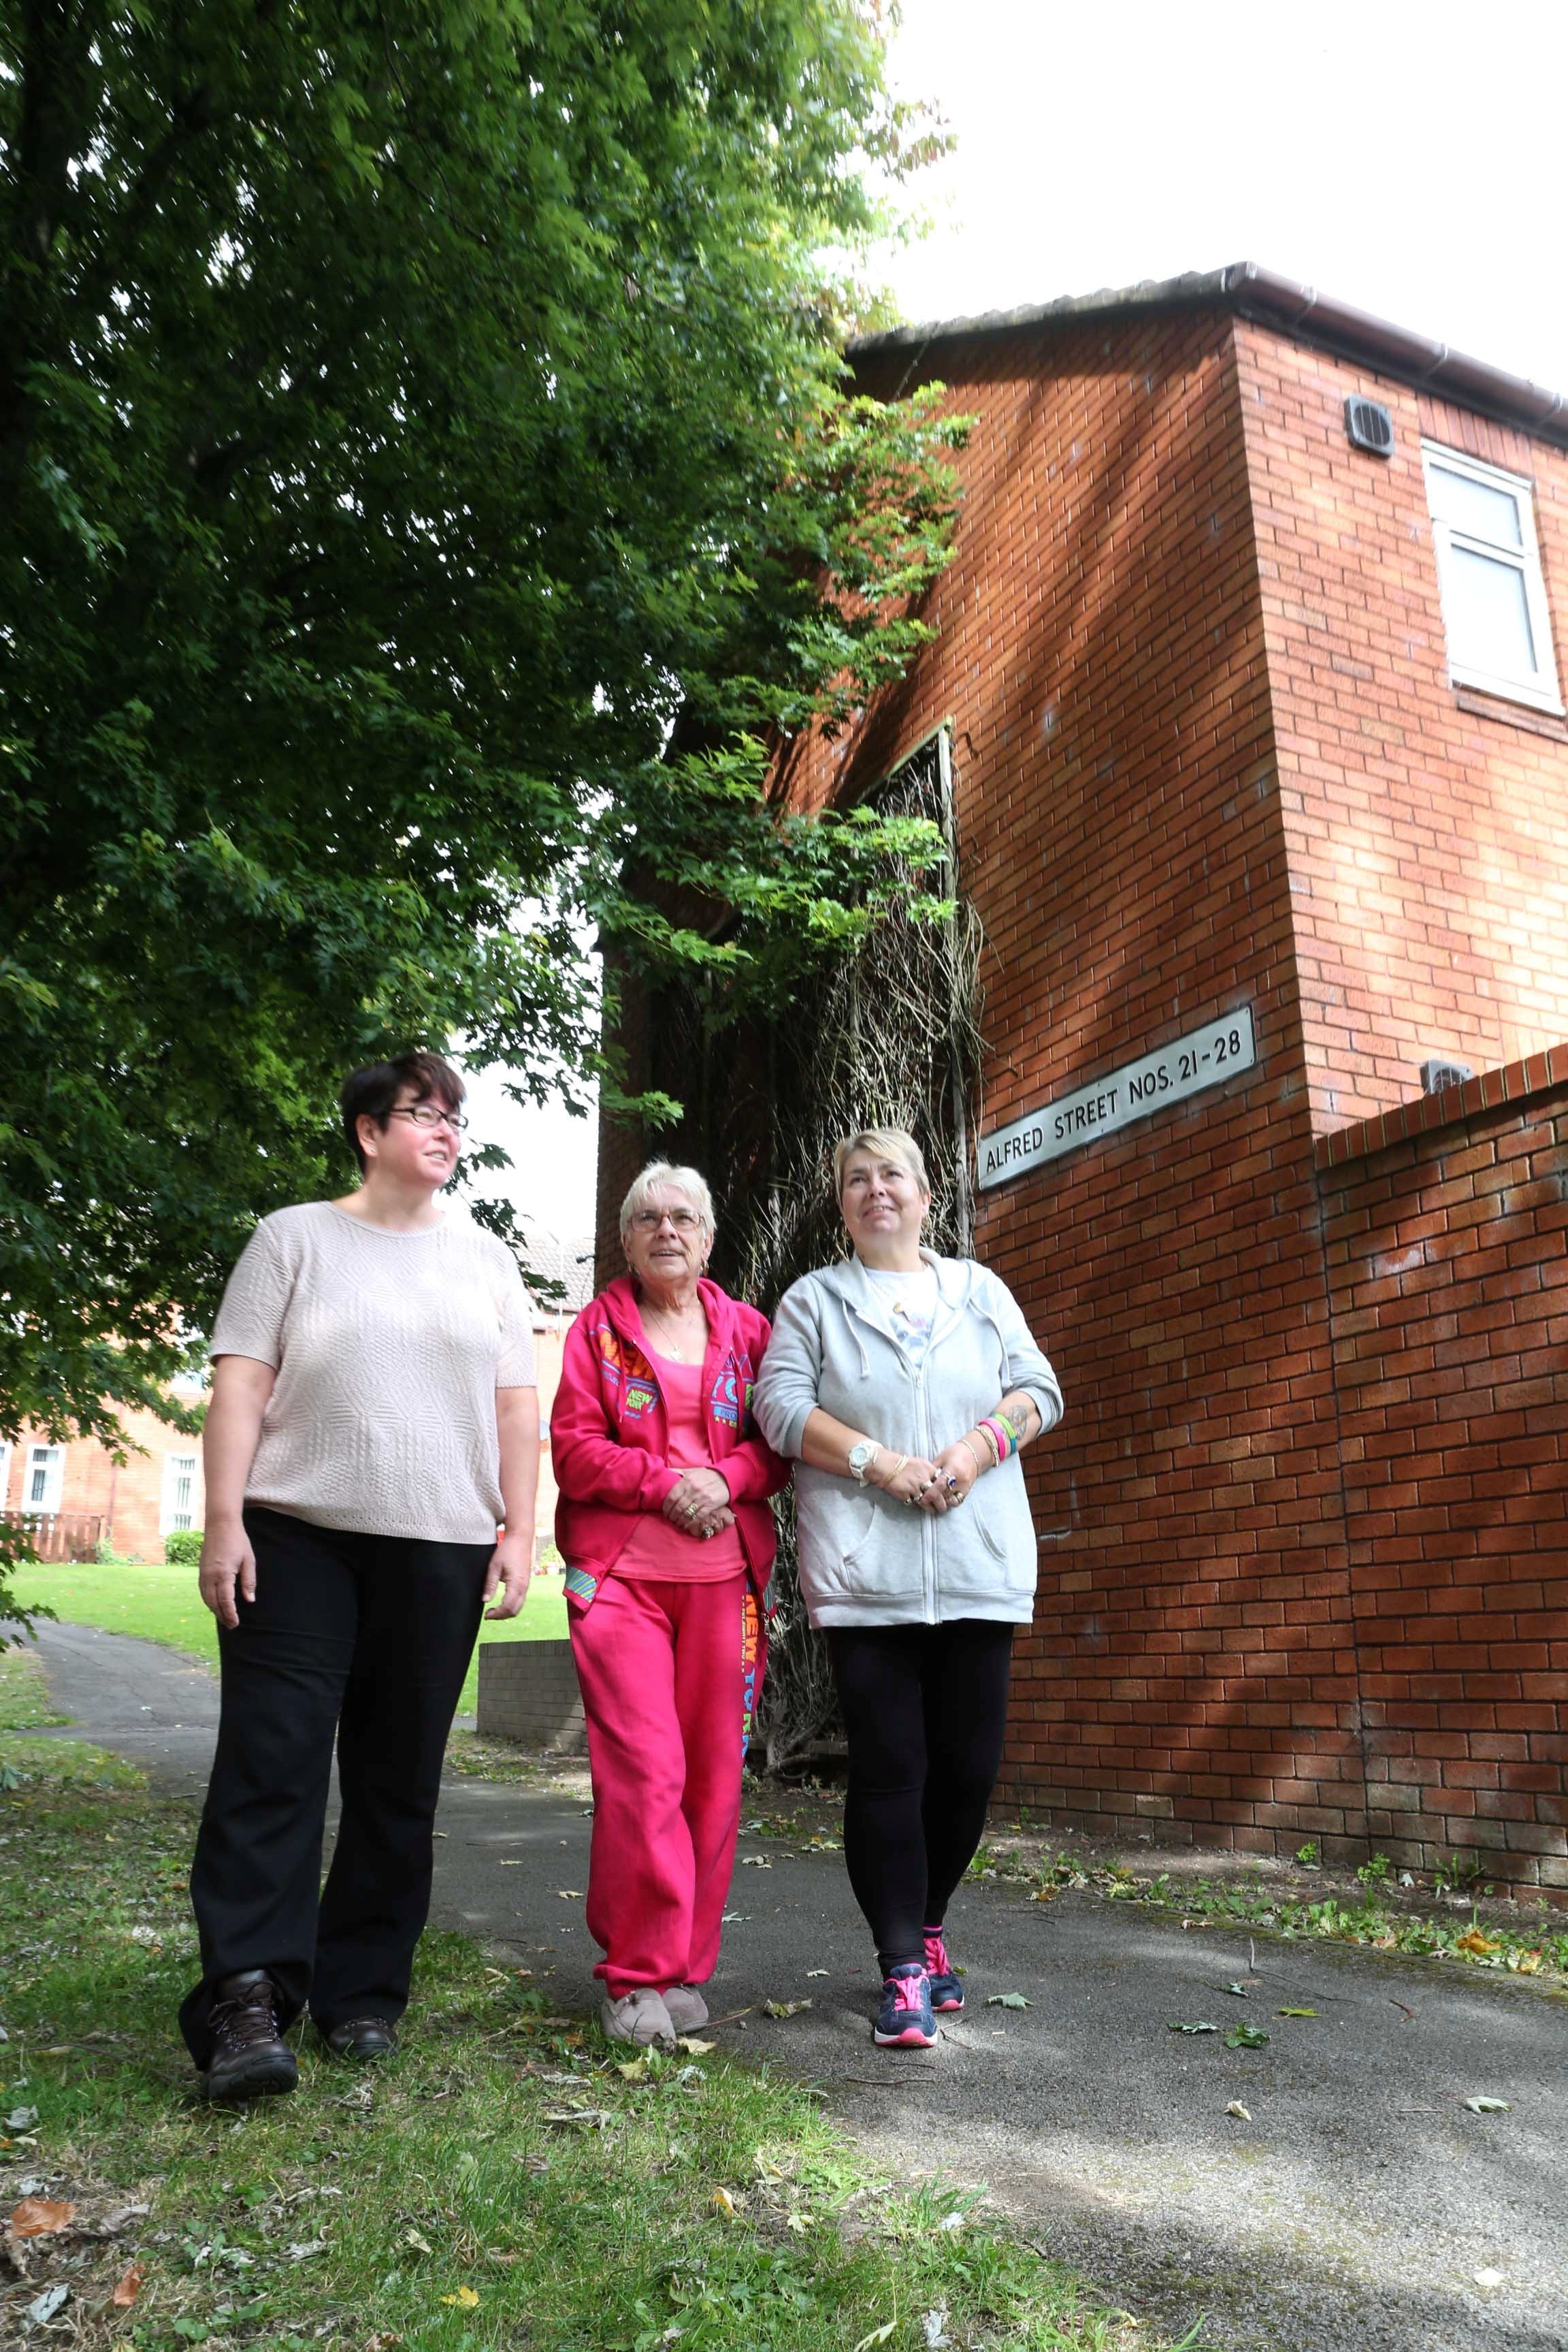 Darlington pensioner expresses concern about overgrown trees